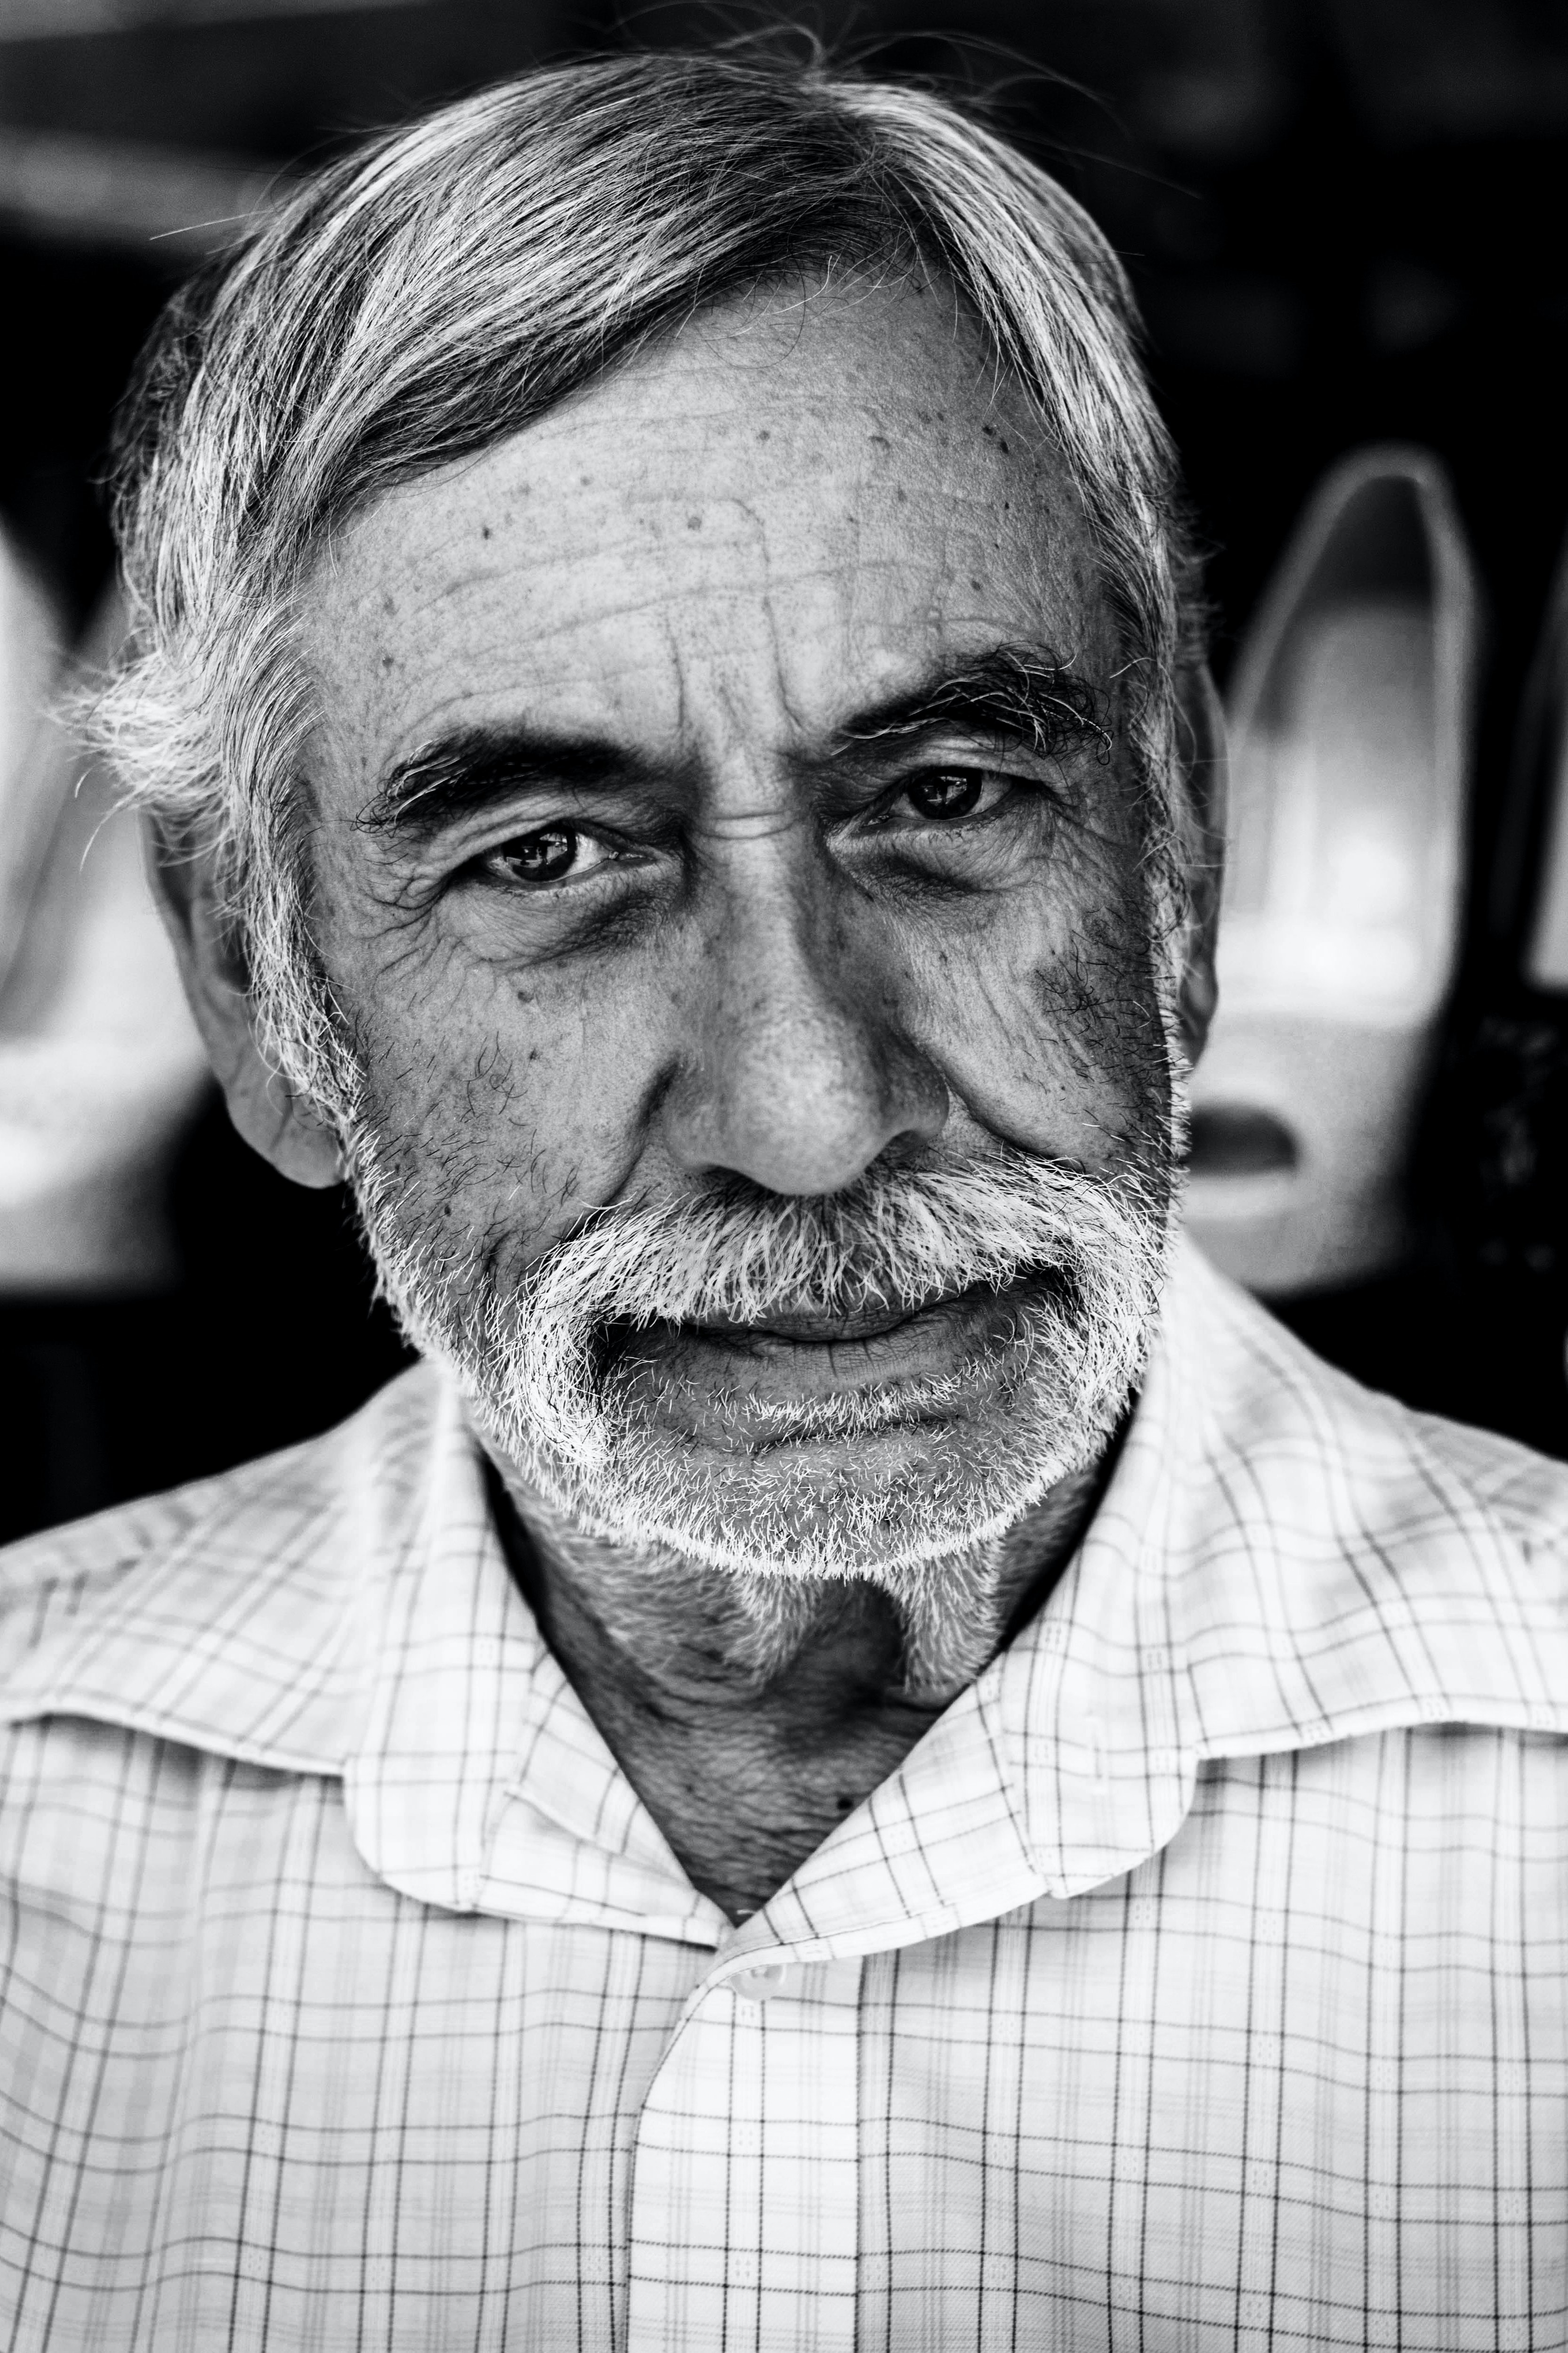 Black and white close up shot of grey bearded older man with relaxed expression